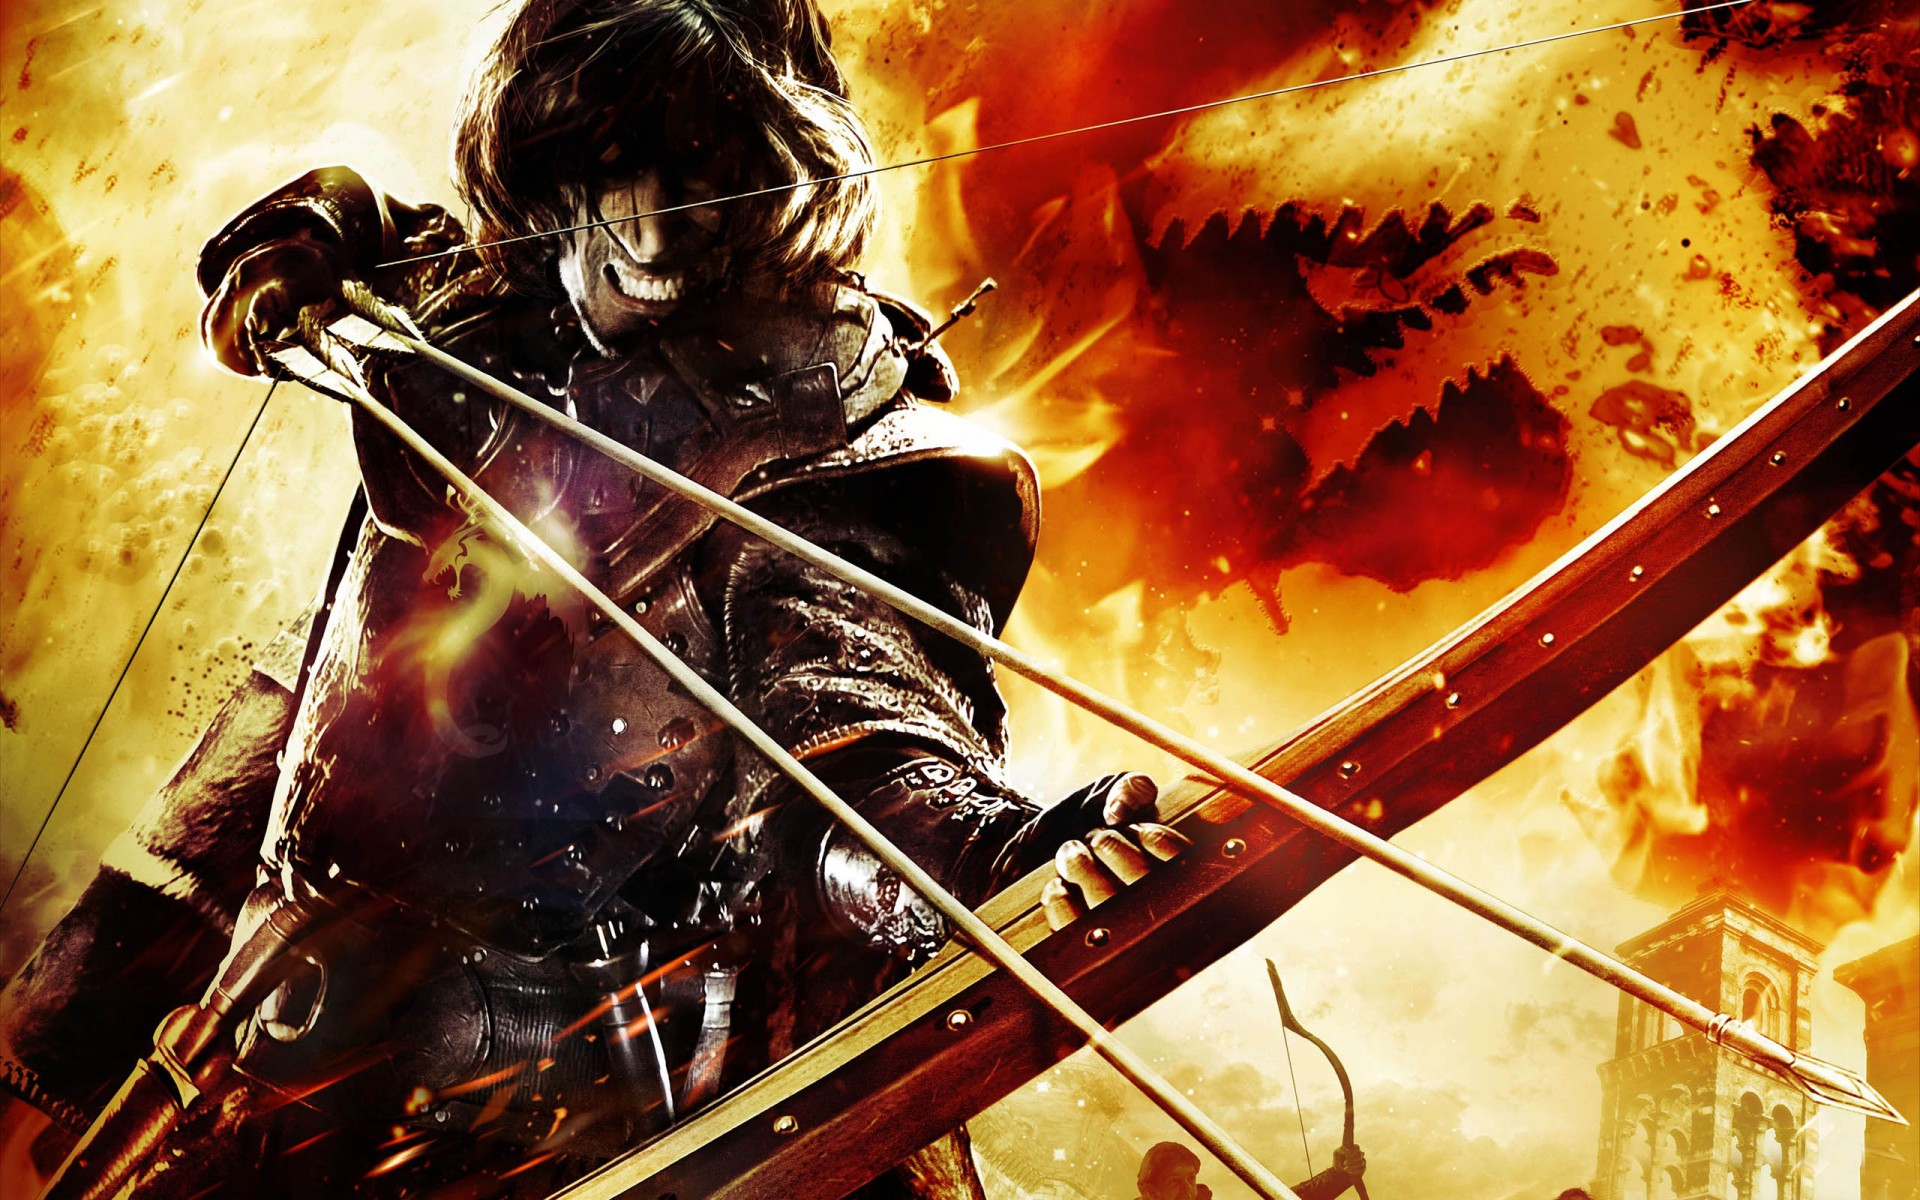 Dragons Dogma Wallpapers Videojuegos.